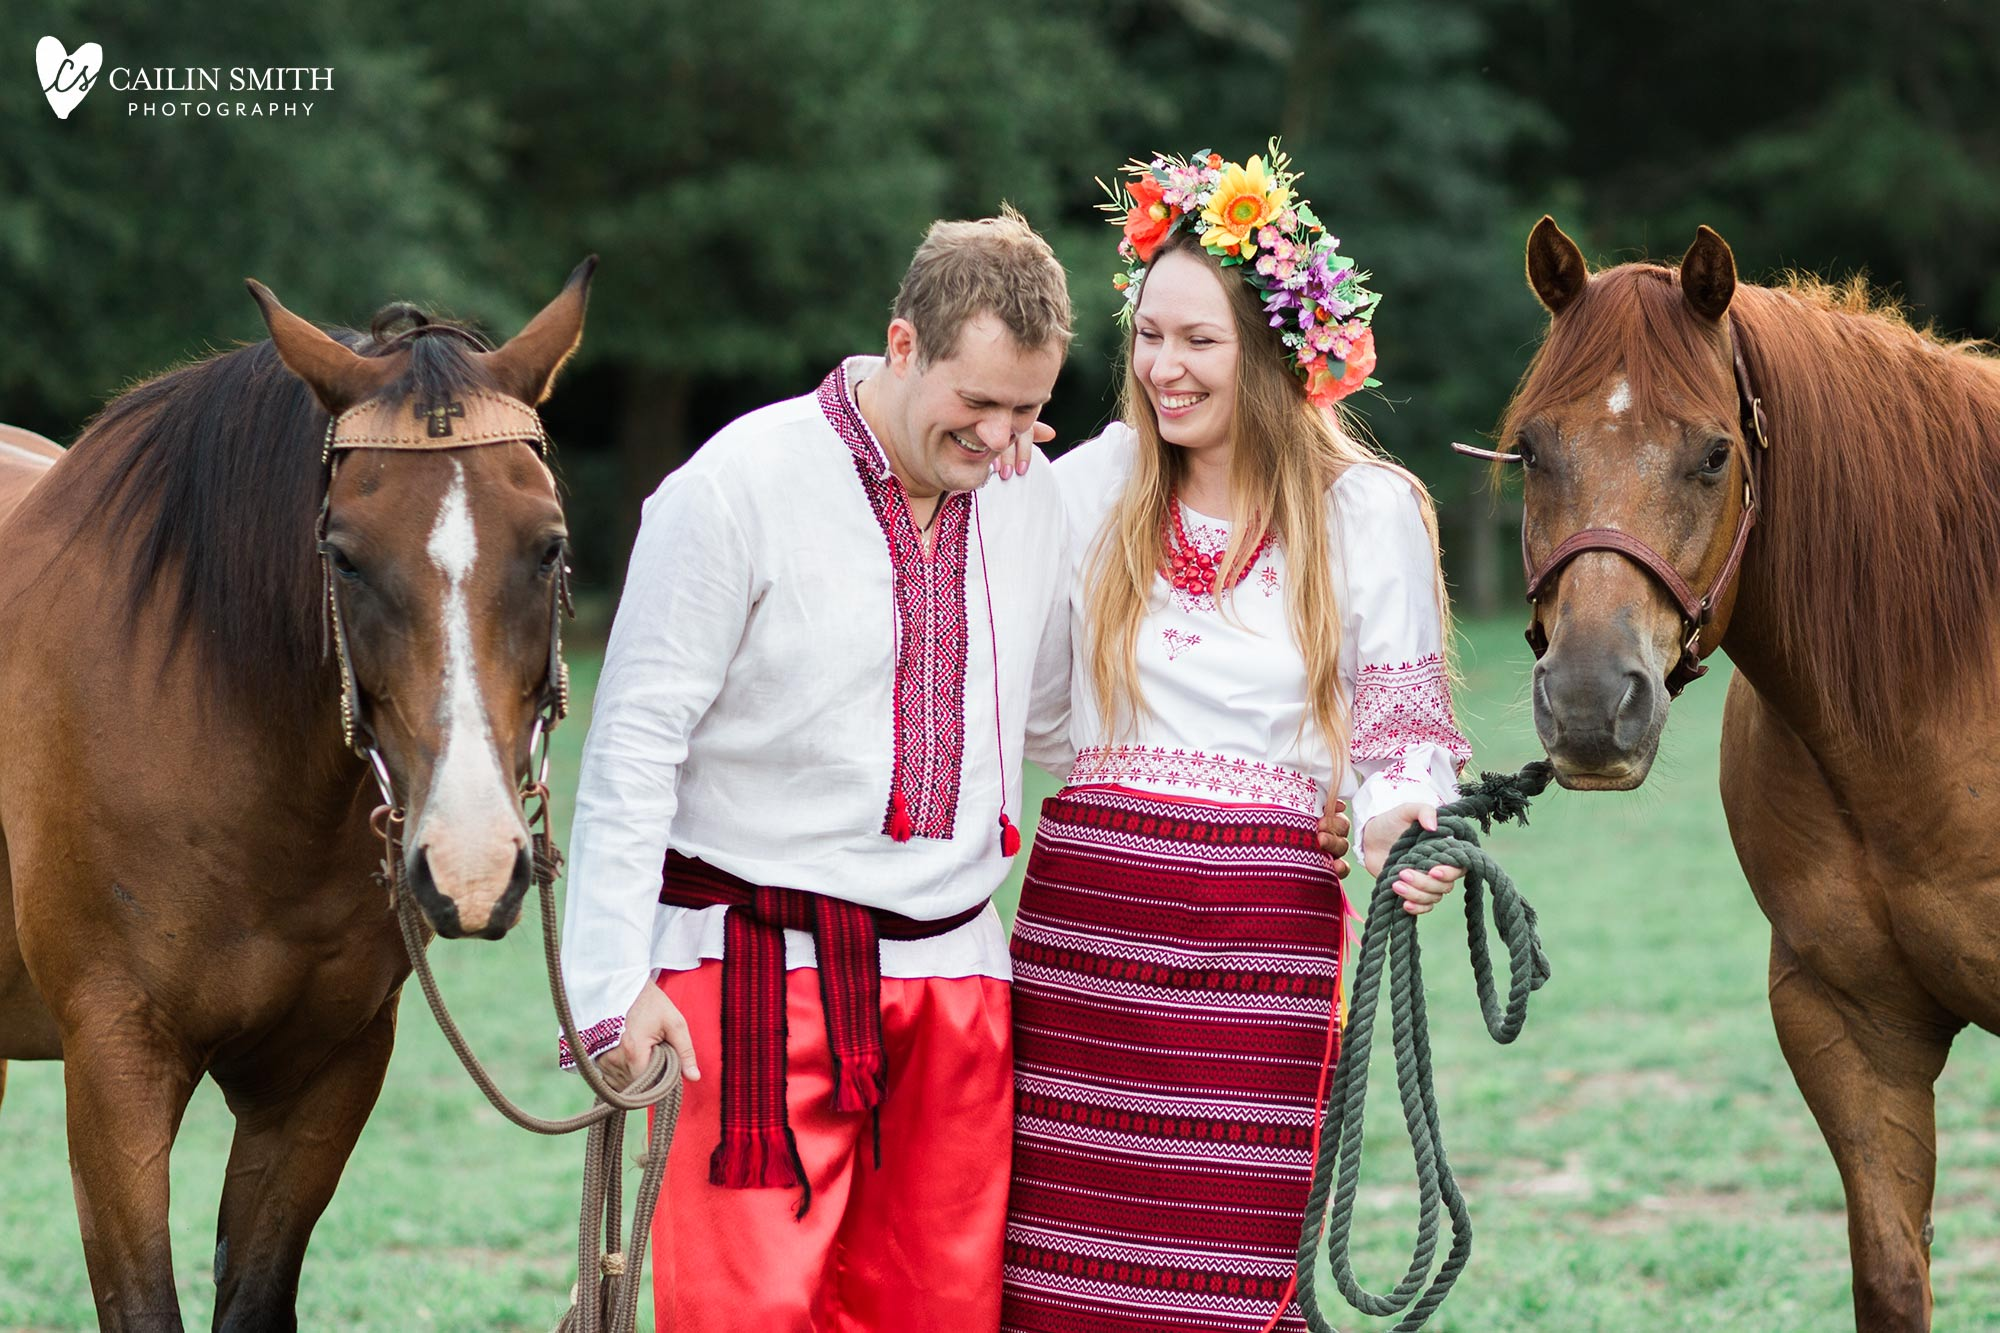 Tetiana_James_Horse_Engagement_Photography_0017.jpg